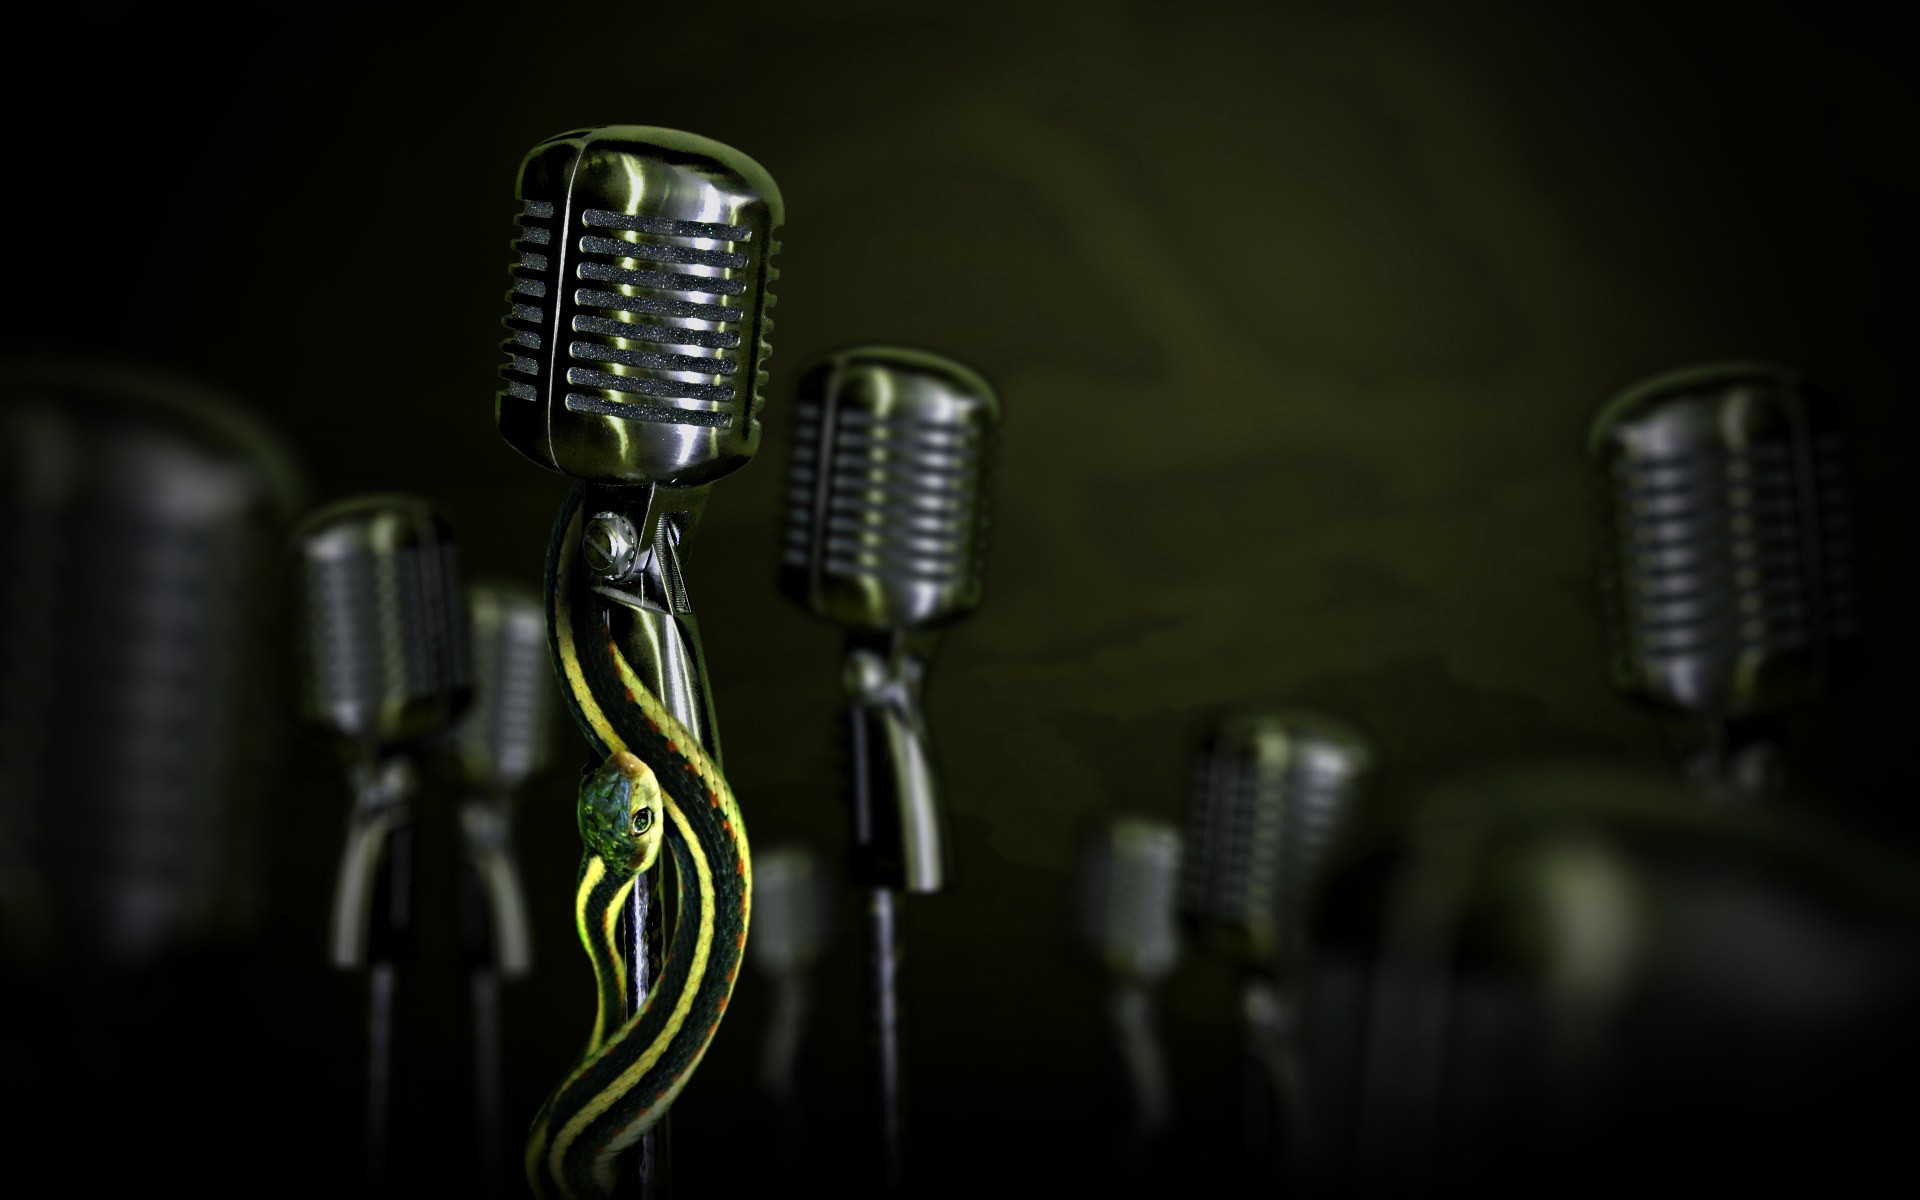 Free Snakes on Microphone wallpaper background